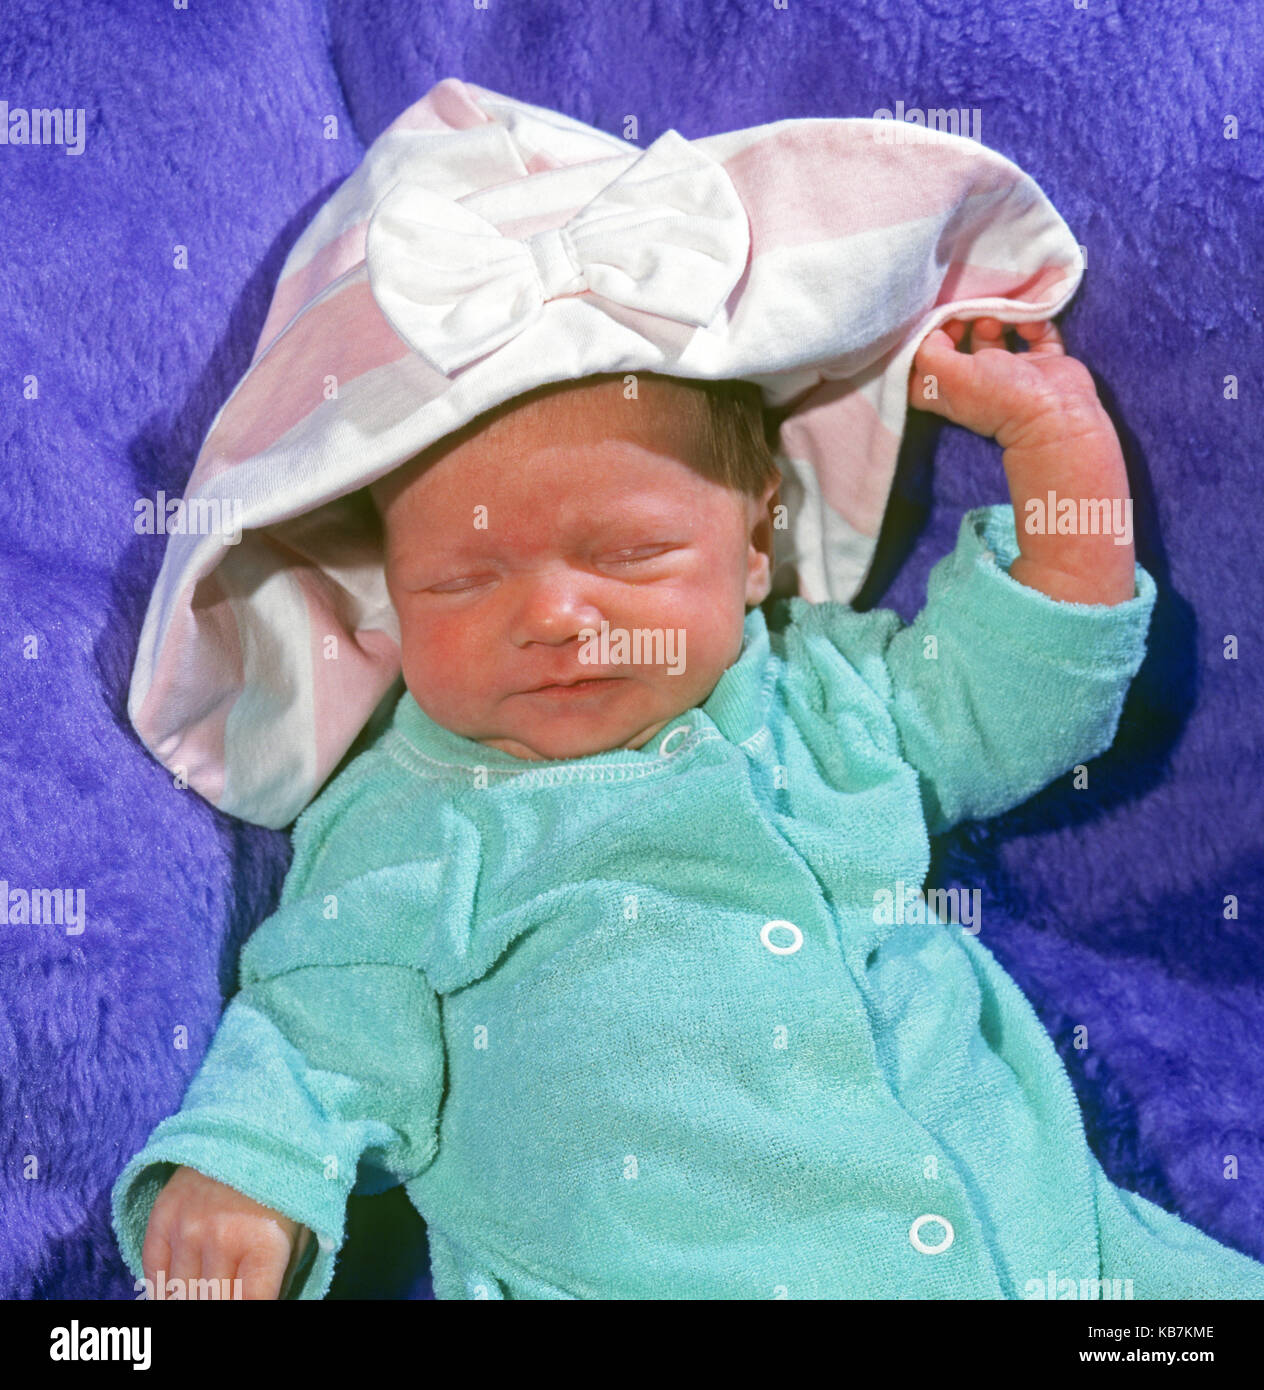 A two-week old baby wearing a onesie and a bonnet taking a nap in a blue blanket. - Stock Image